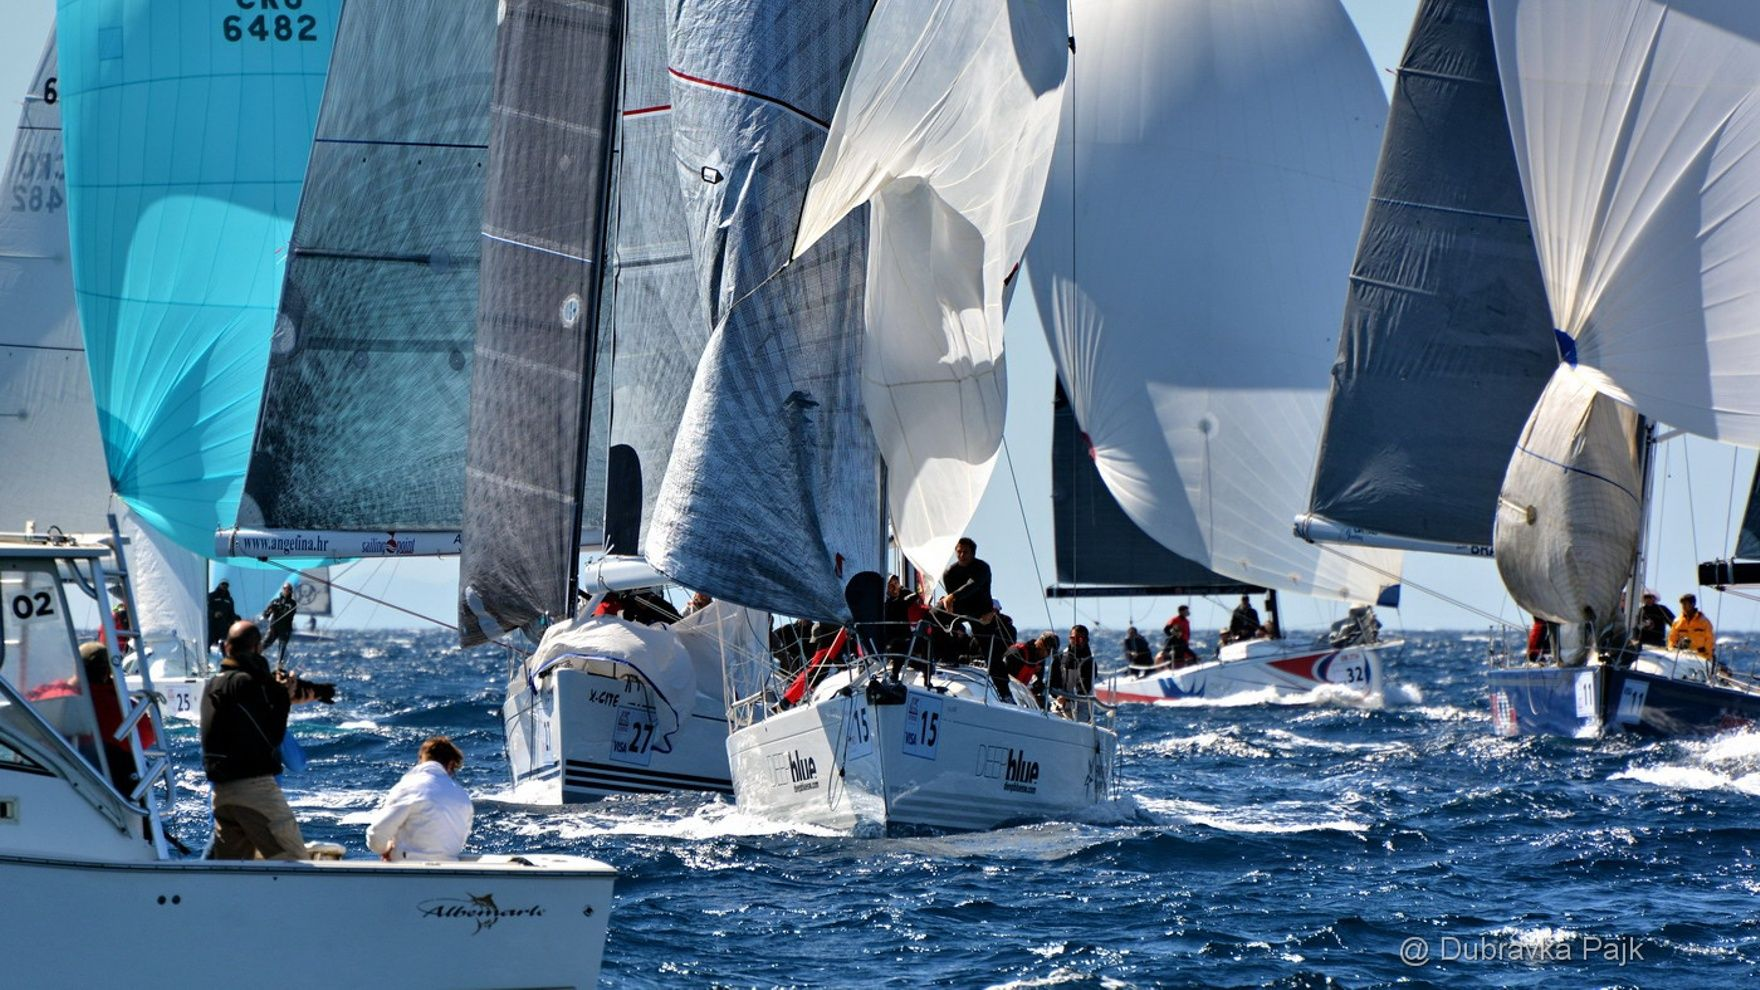 Easter regatta in Croatia